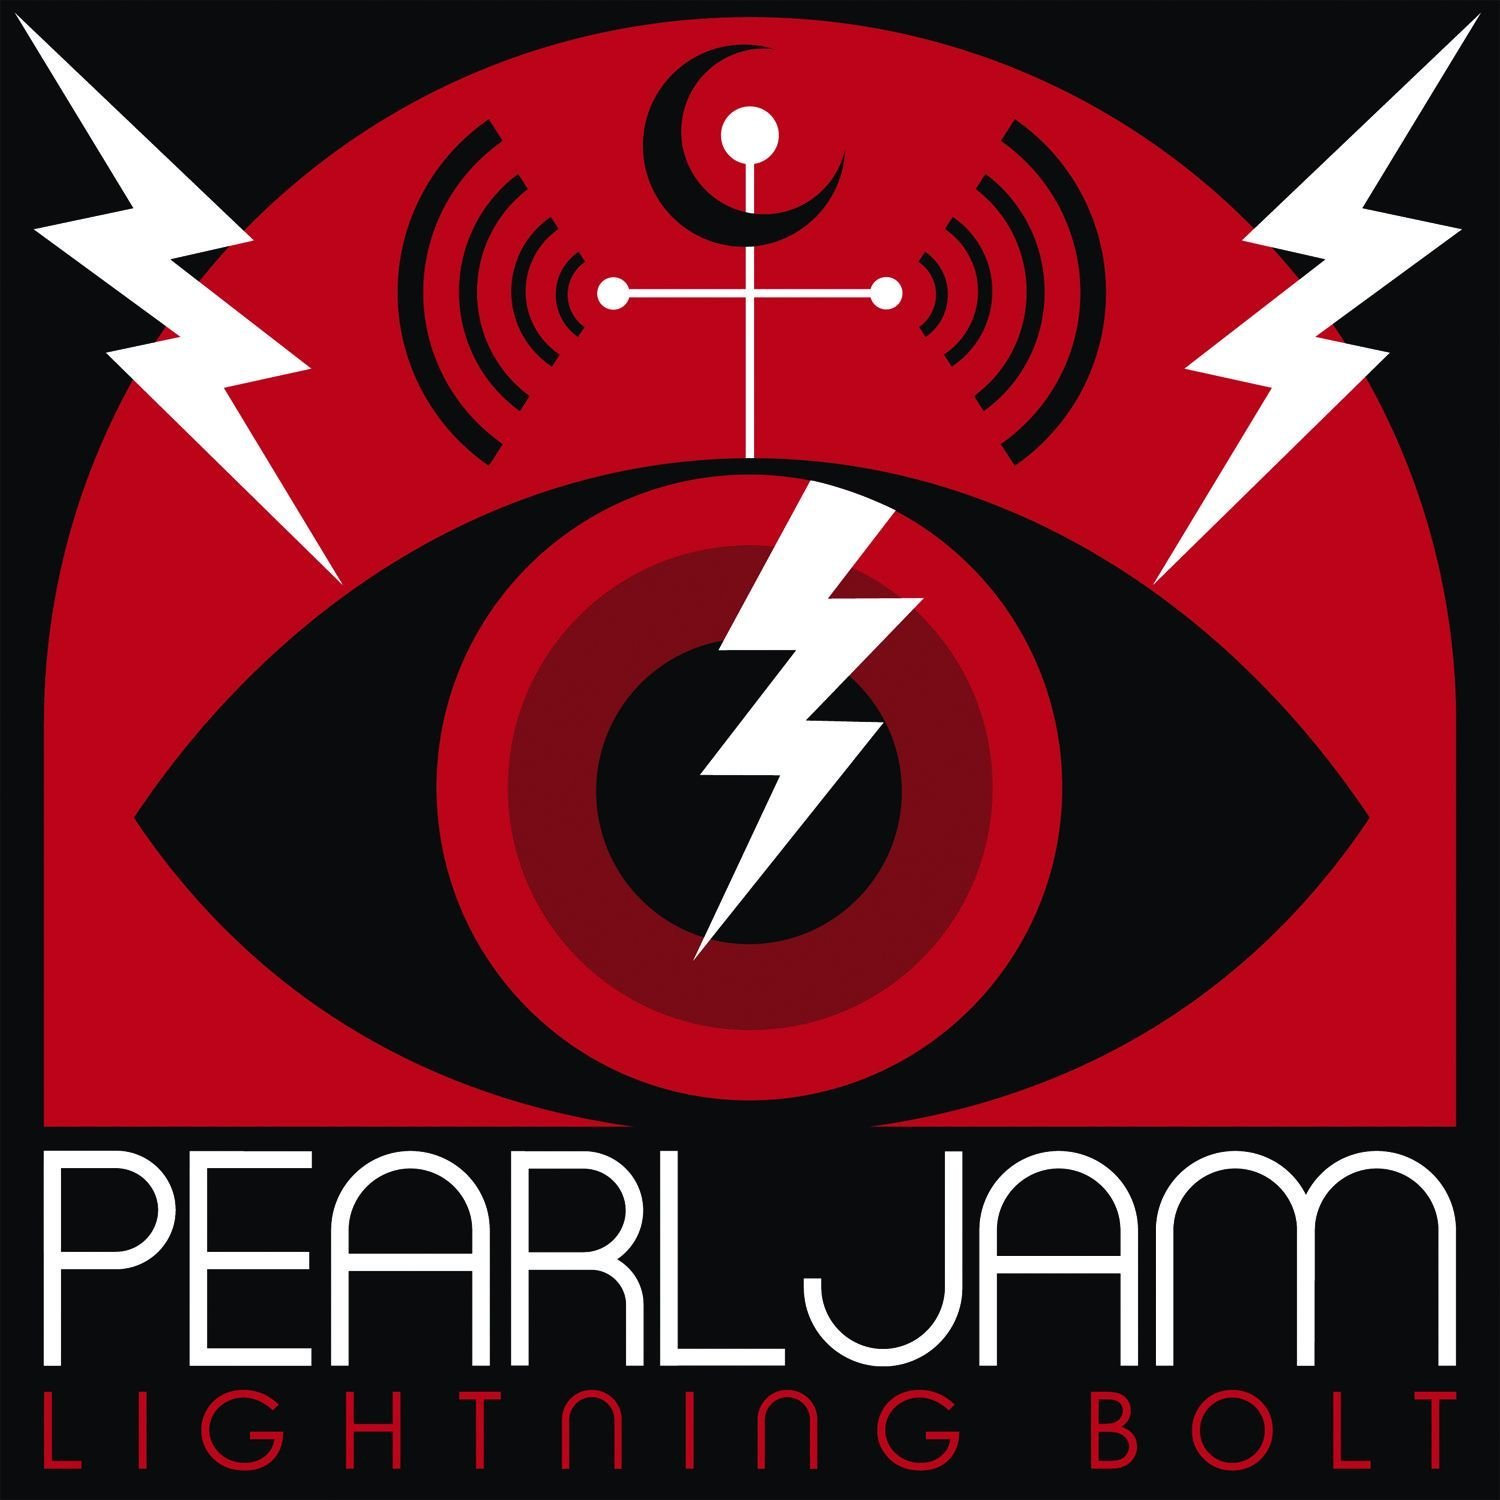 Pearl Jam Lightning Bolt: An Album Review